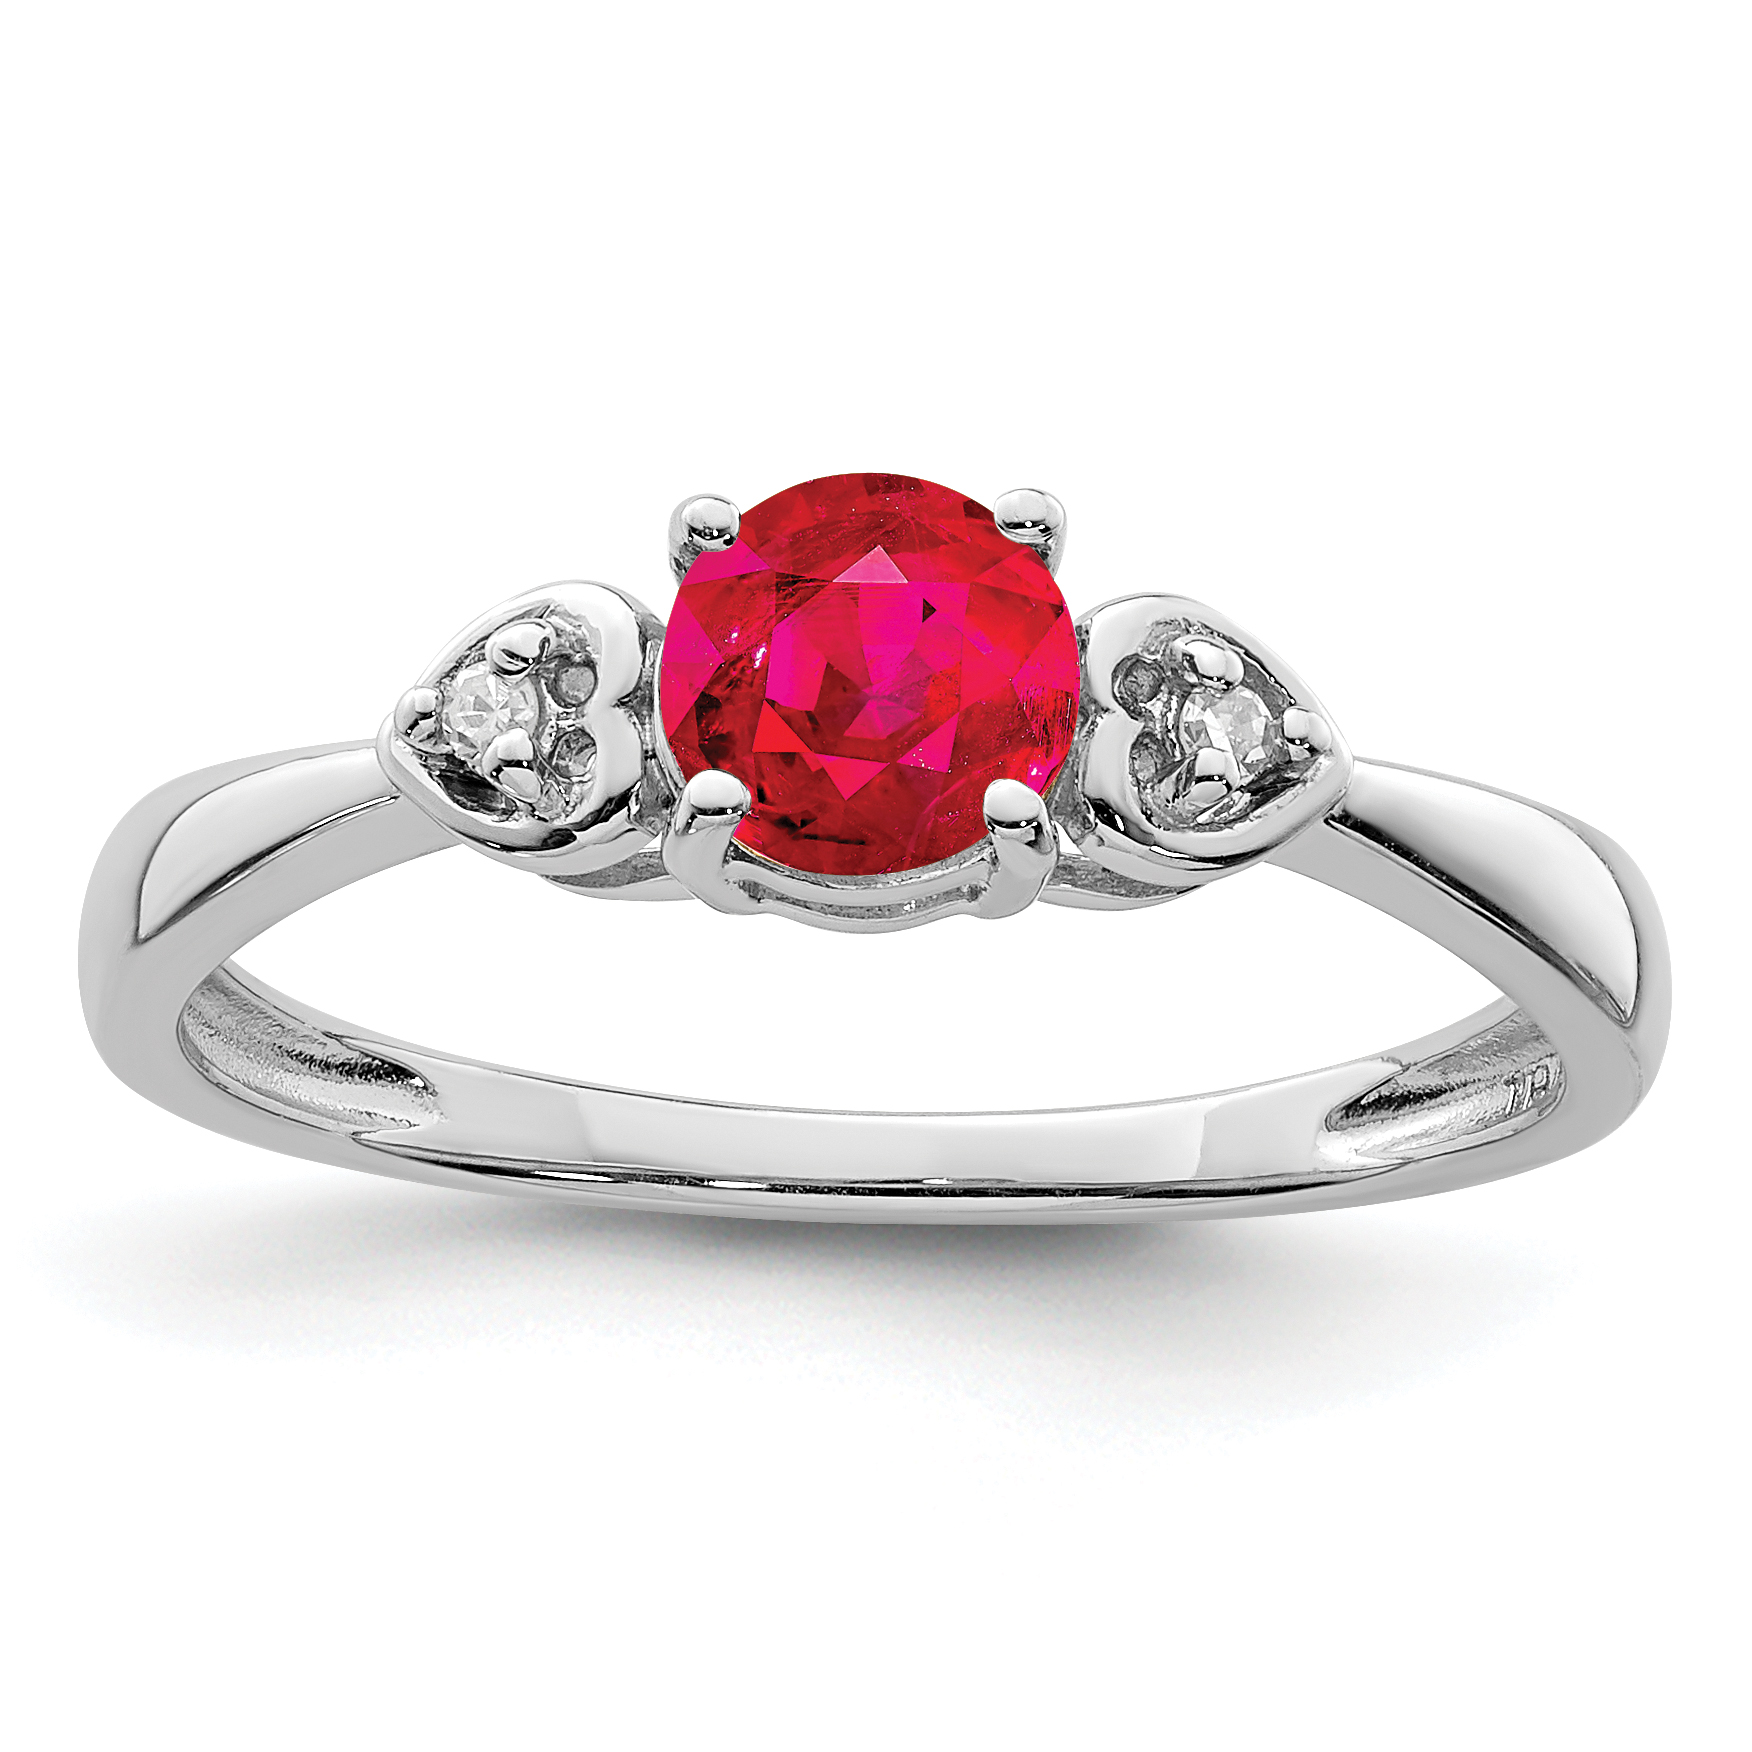 Ring For Gentleman Online Gift Jewelry Solid 925 Sterling Silver Ruby Gemstone Men/'s Anniversary Engagement Valentine Wedding Ring Jewelry